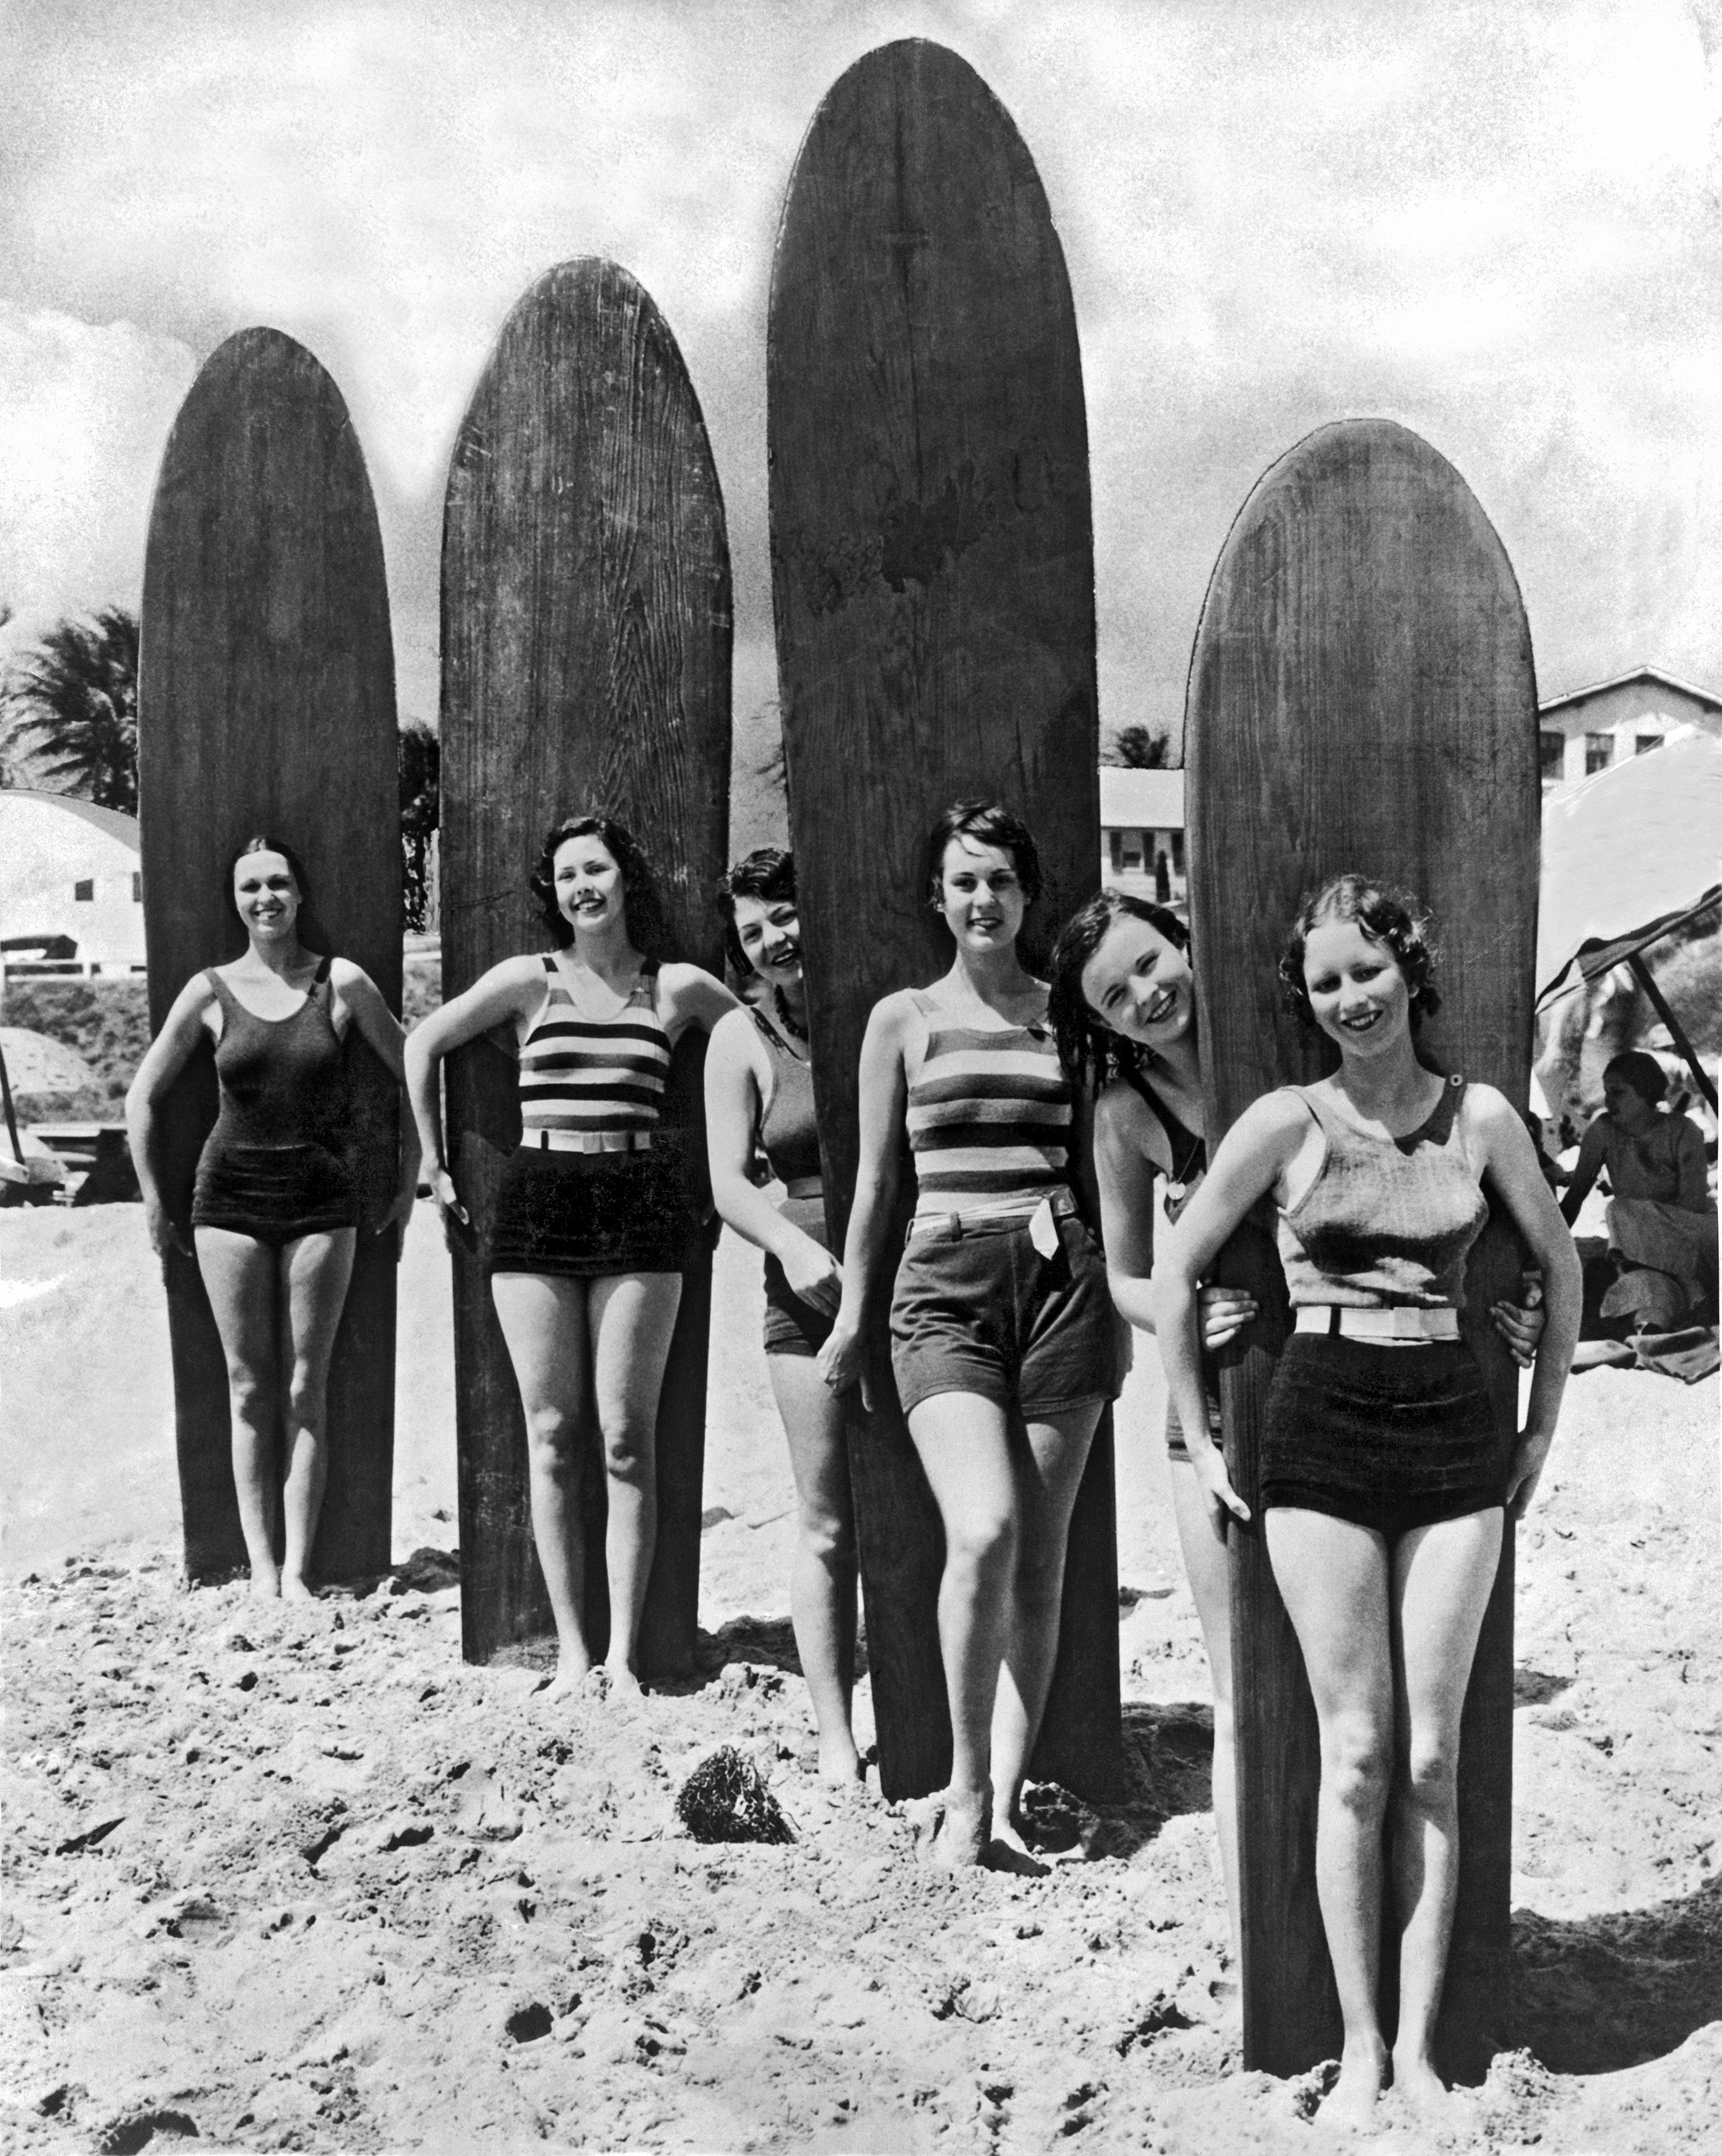 Six young women are ready with their surf boards on a beach in southern California, circa late 1920s/early 1930s.